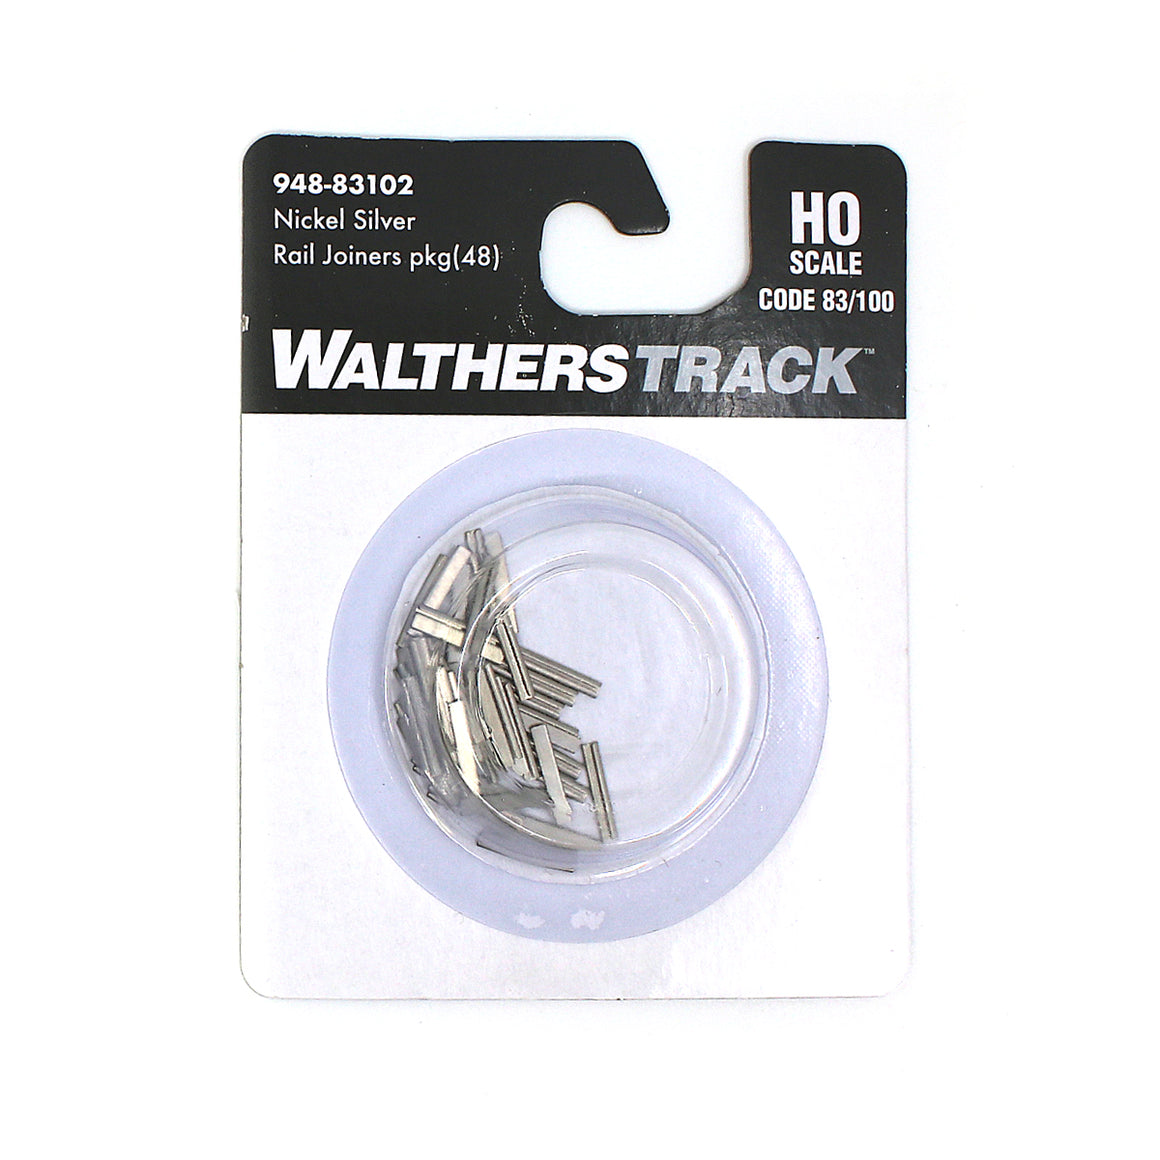 HO Scale: Code 83/100 Nickel Silver Rail Joiners